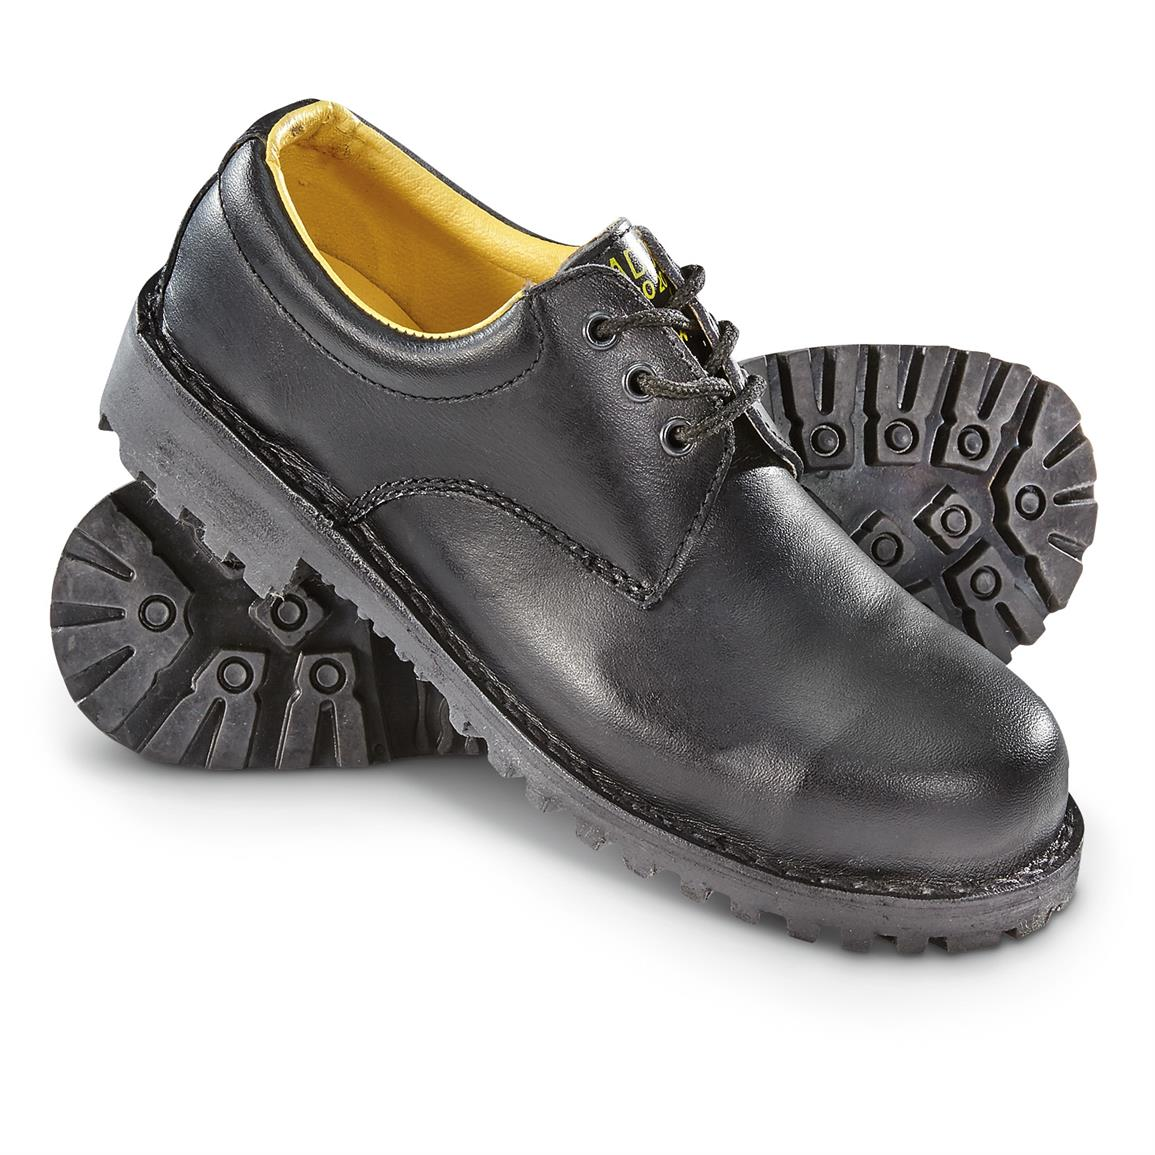 For the right pair of work shoes boost your productivity and good health